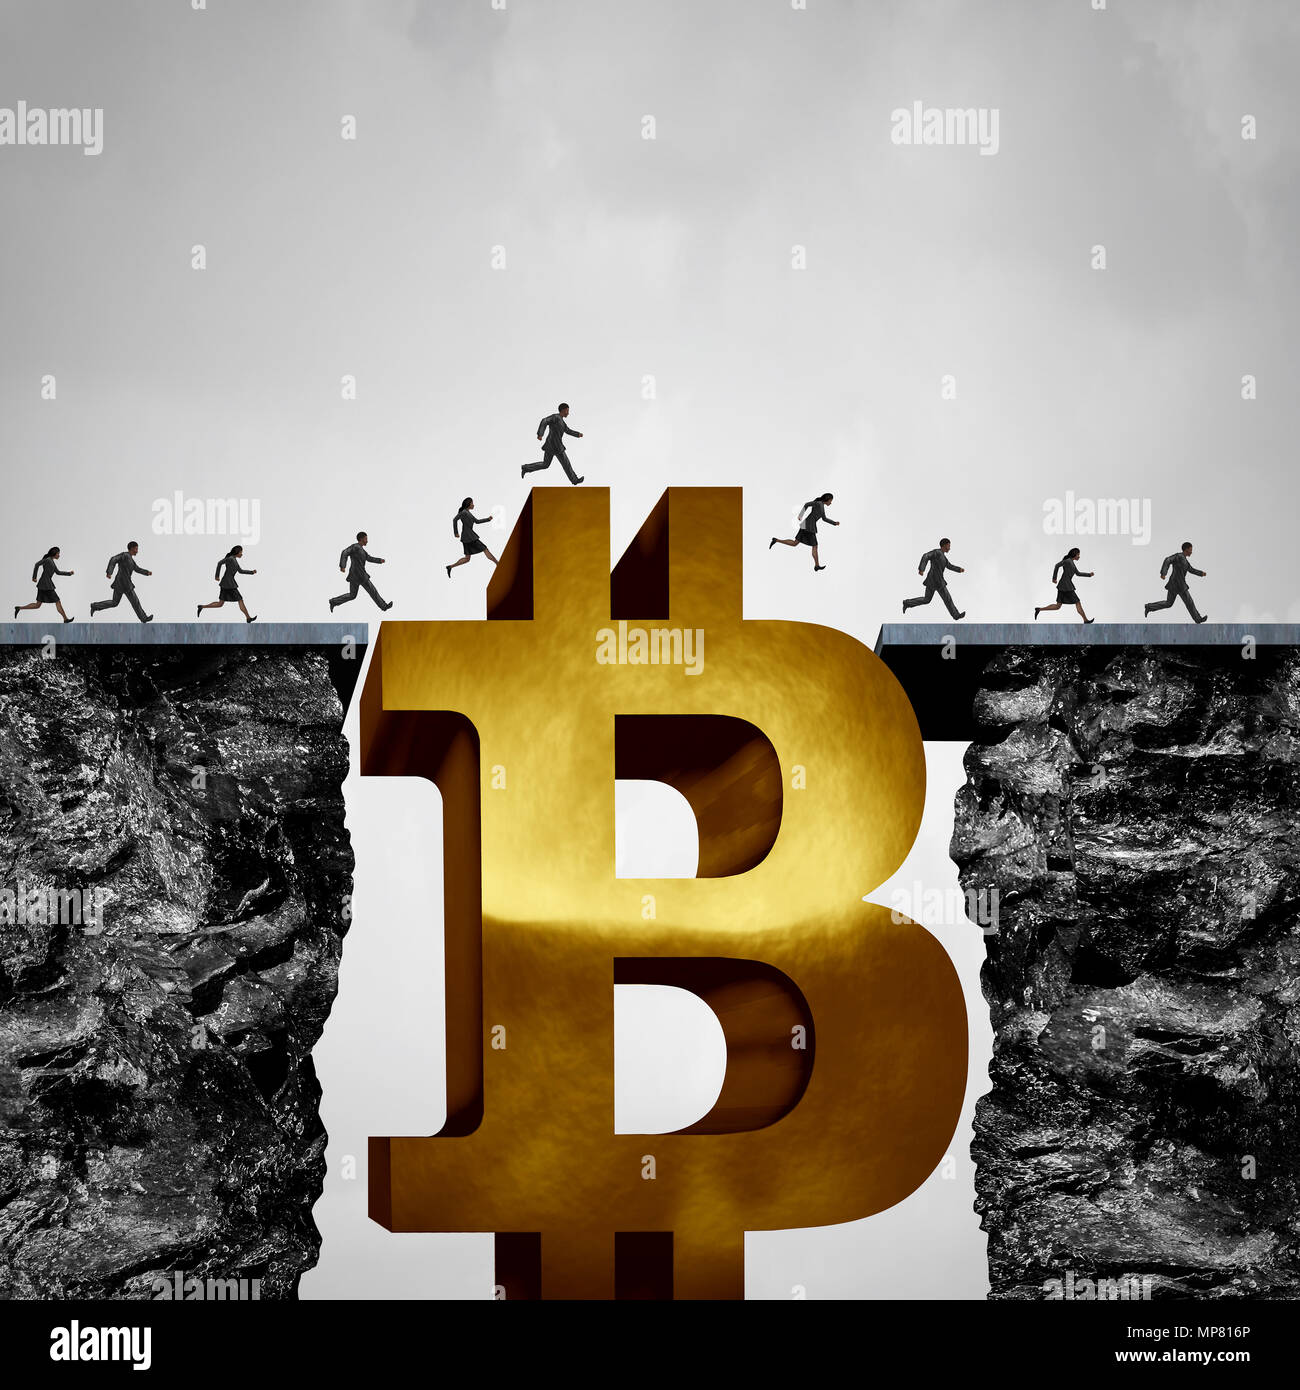 Bitcoin blockchain transfer concept and crypto currency opportunity business concept and cryptocurrency solution or digital money. - Stock Image